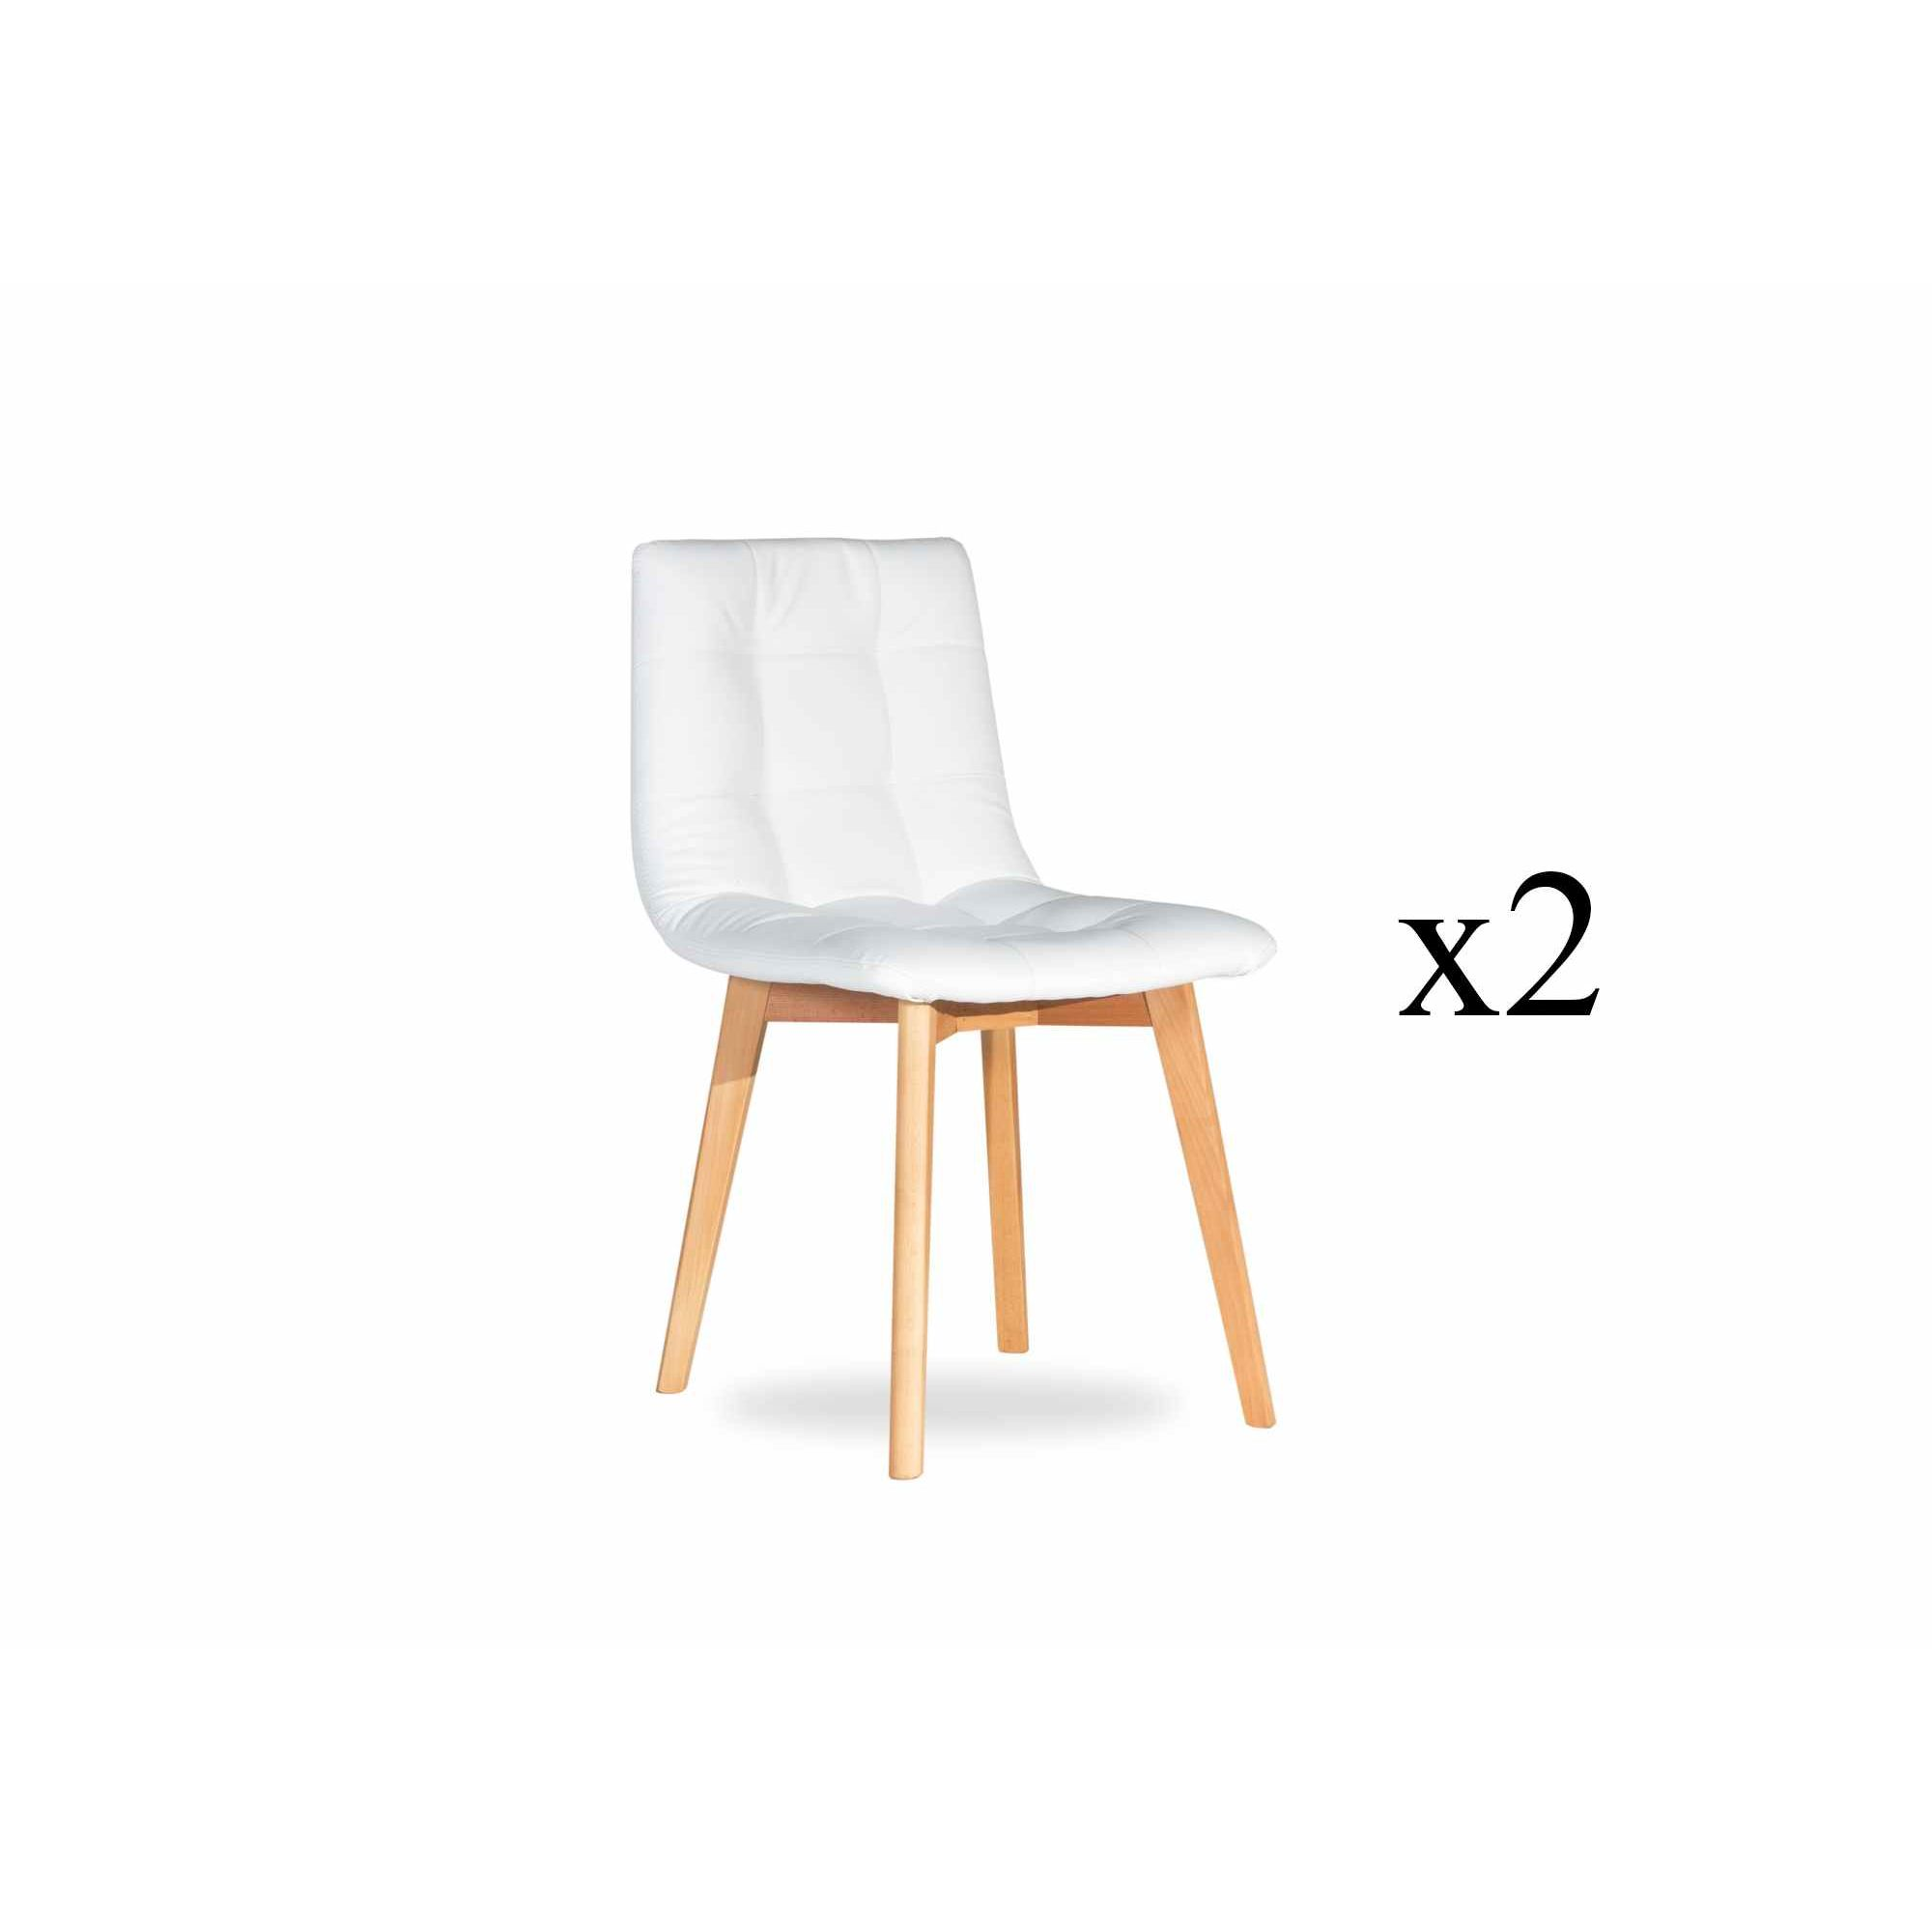 Deco in paris 1 lot de 2 chaises scandinave blanche fany for Chaises blanches scandinaves